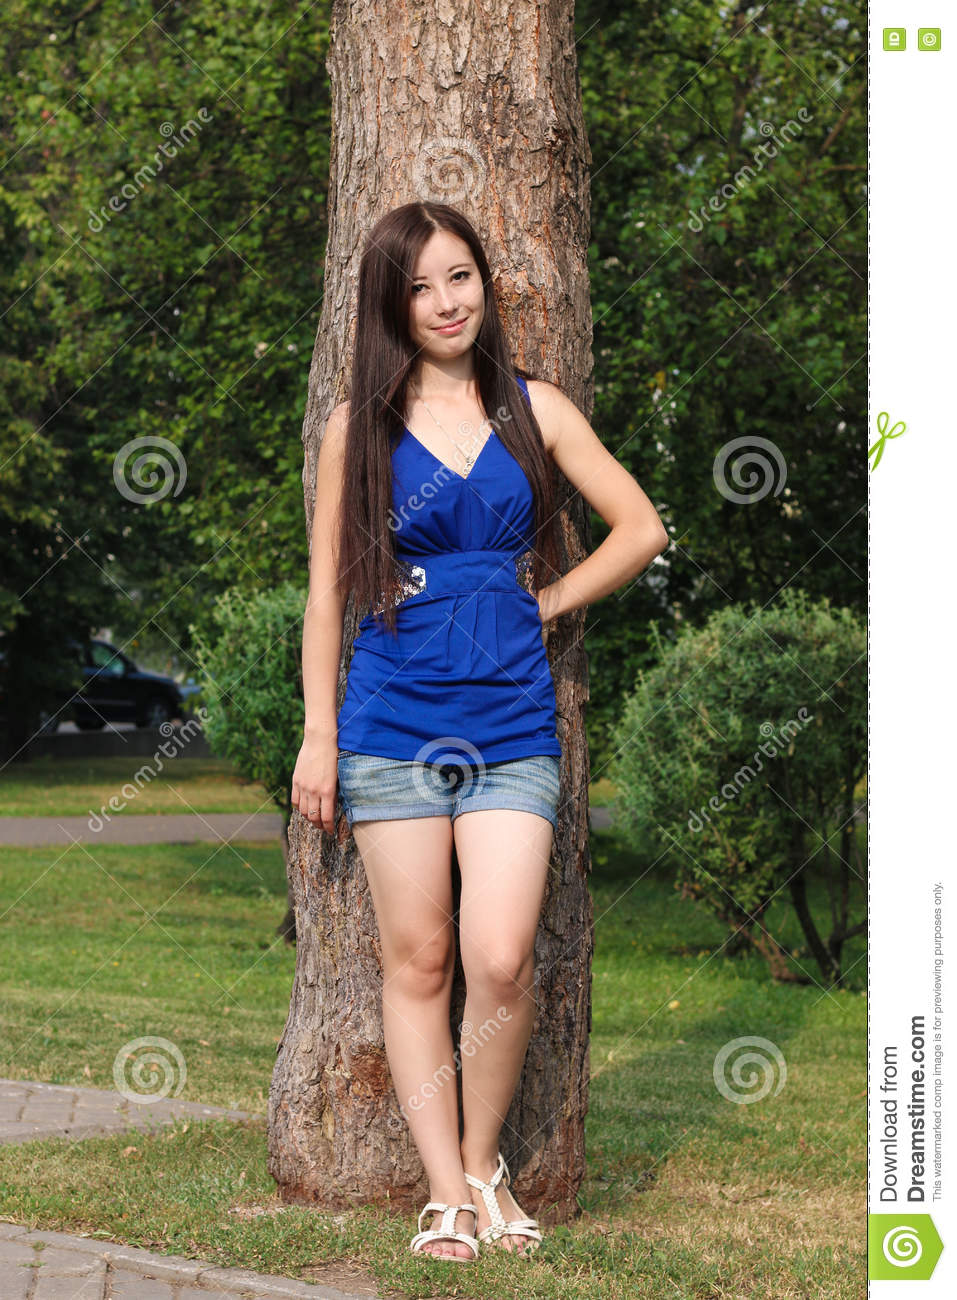 Young girl in shorts leaned against a tree in the Park